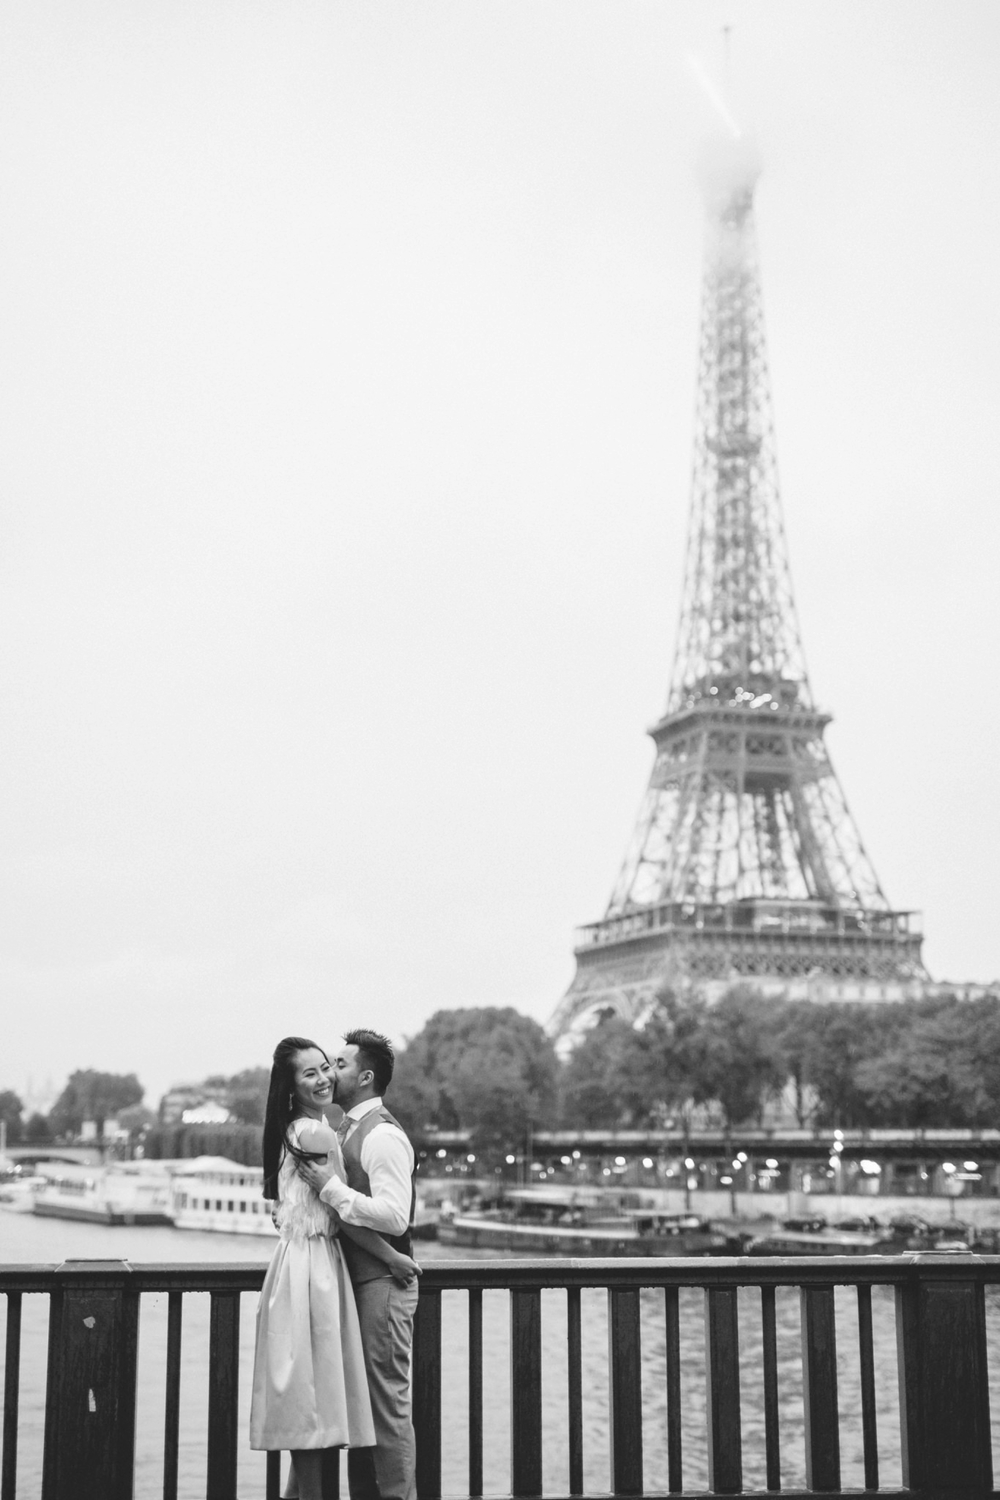 Suzanne_li_photography_paris_engagement_shoot_0021.jpg